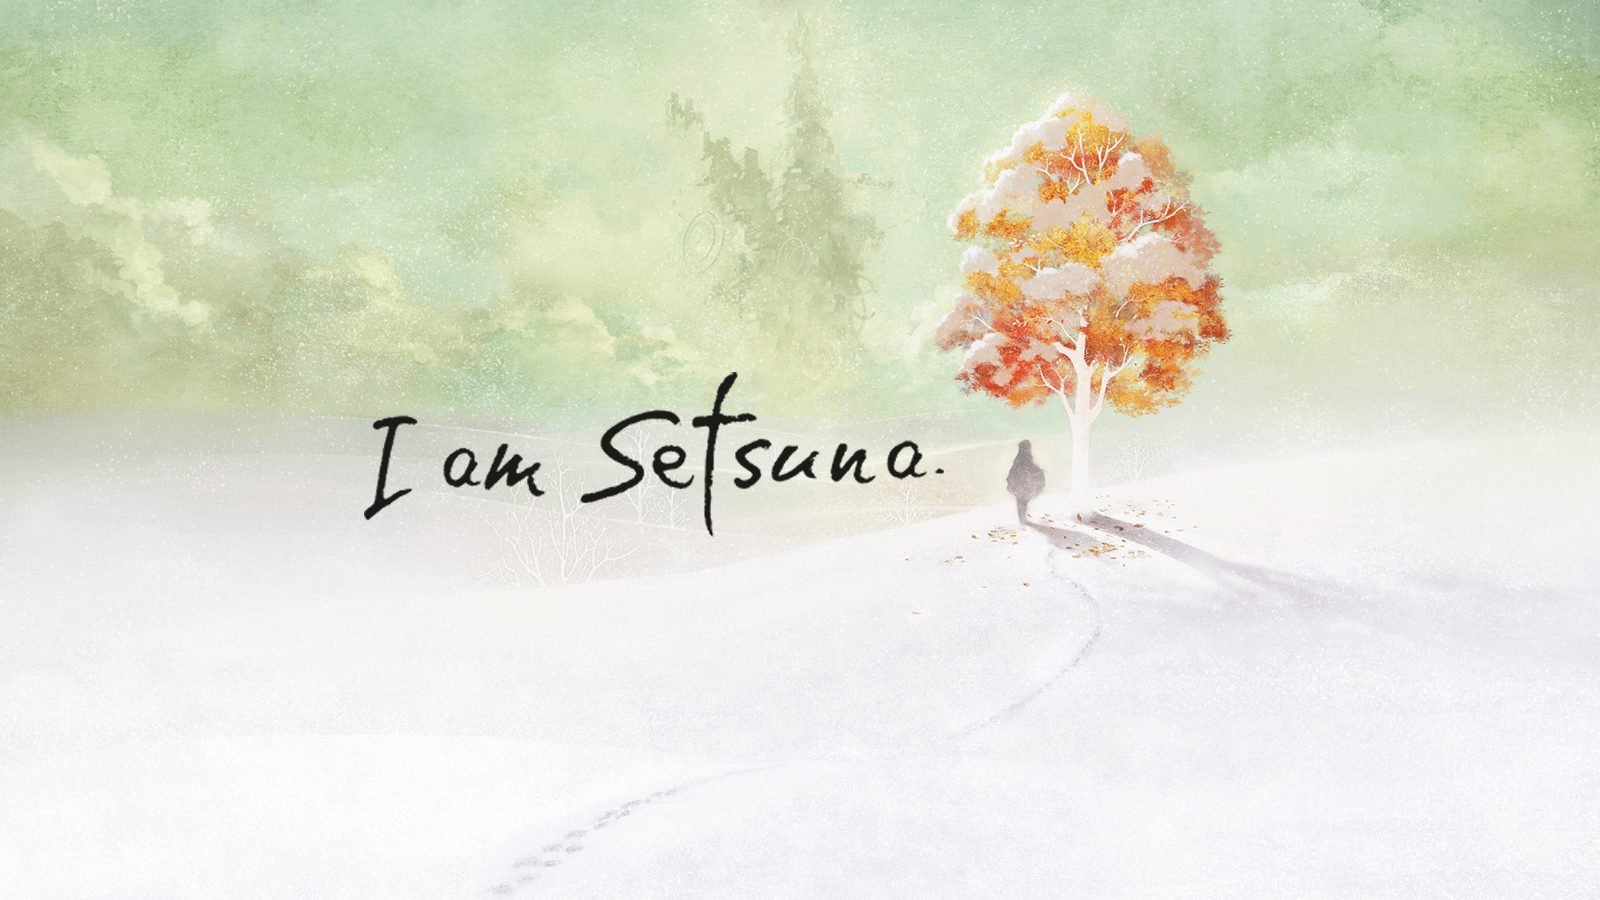 I am Setsuna Switch Review - Making A New Home 4